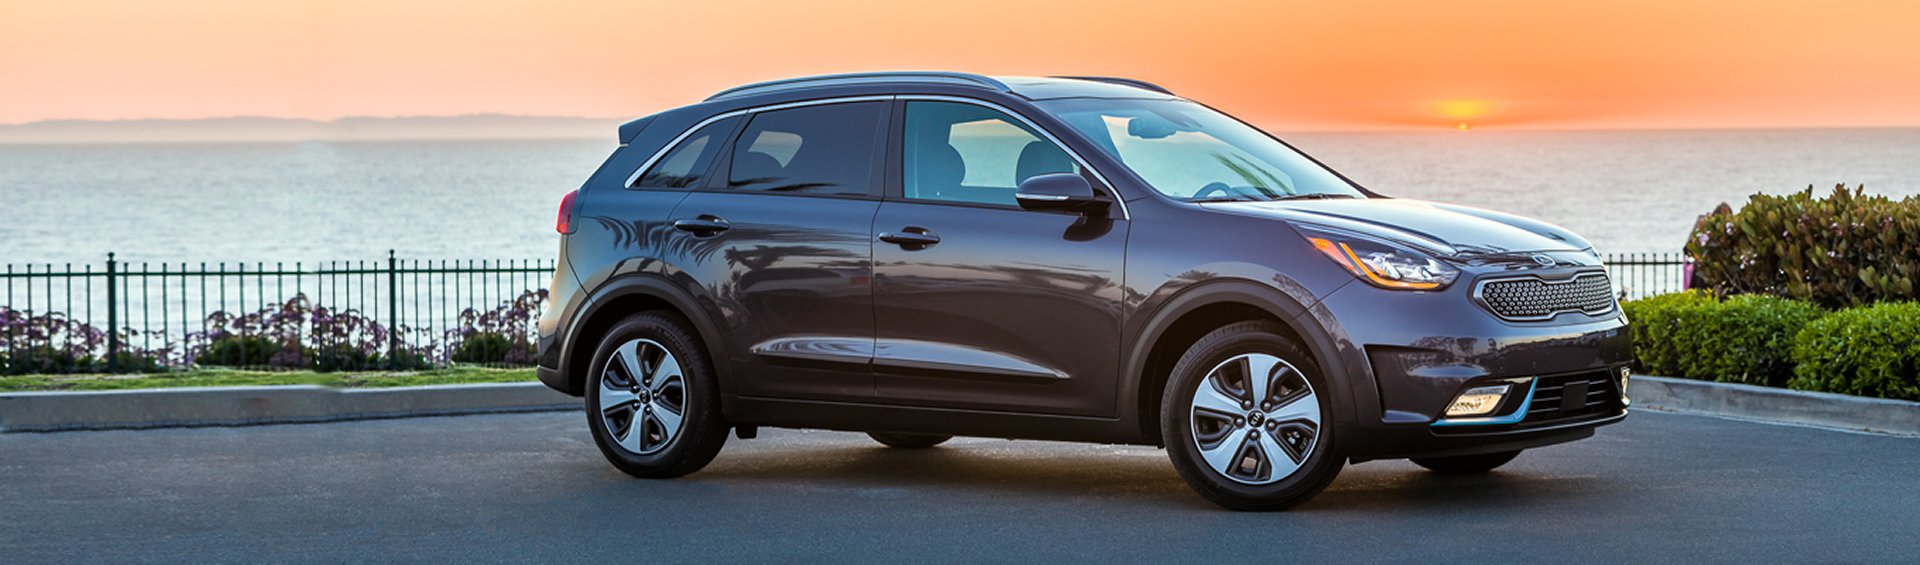 2018 kia niro plug in hybrid near denver co. Black Bedroom Furniture Sets. Home Design Ideas